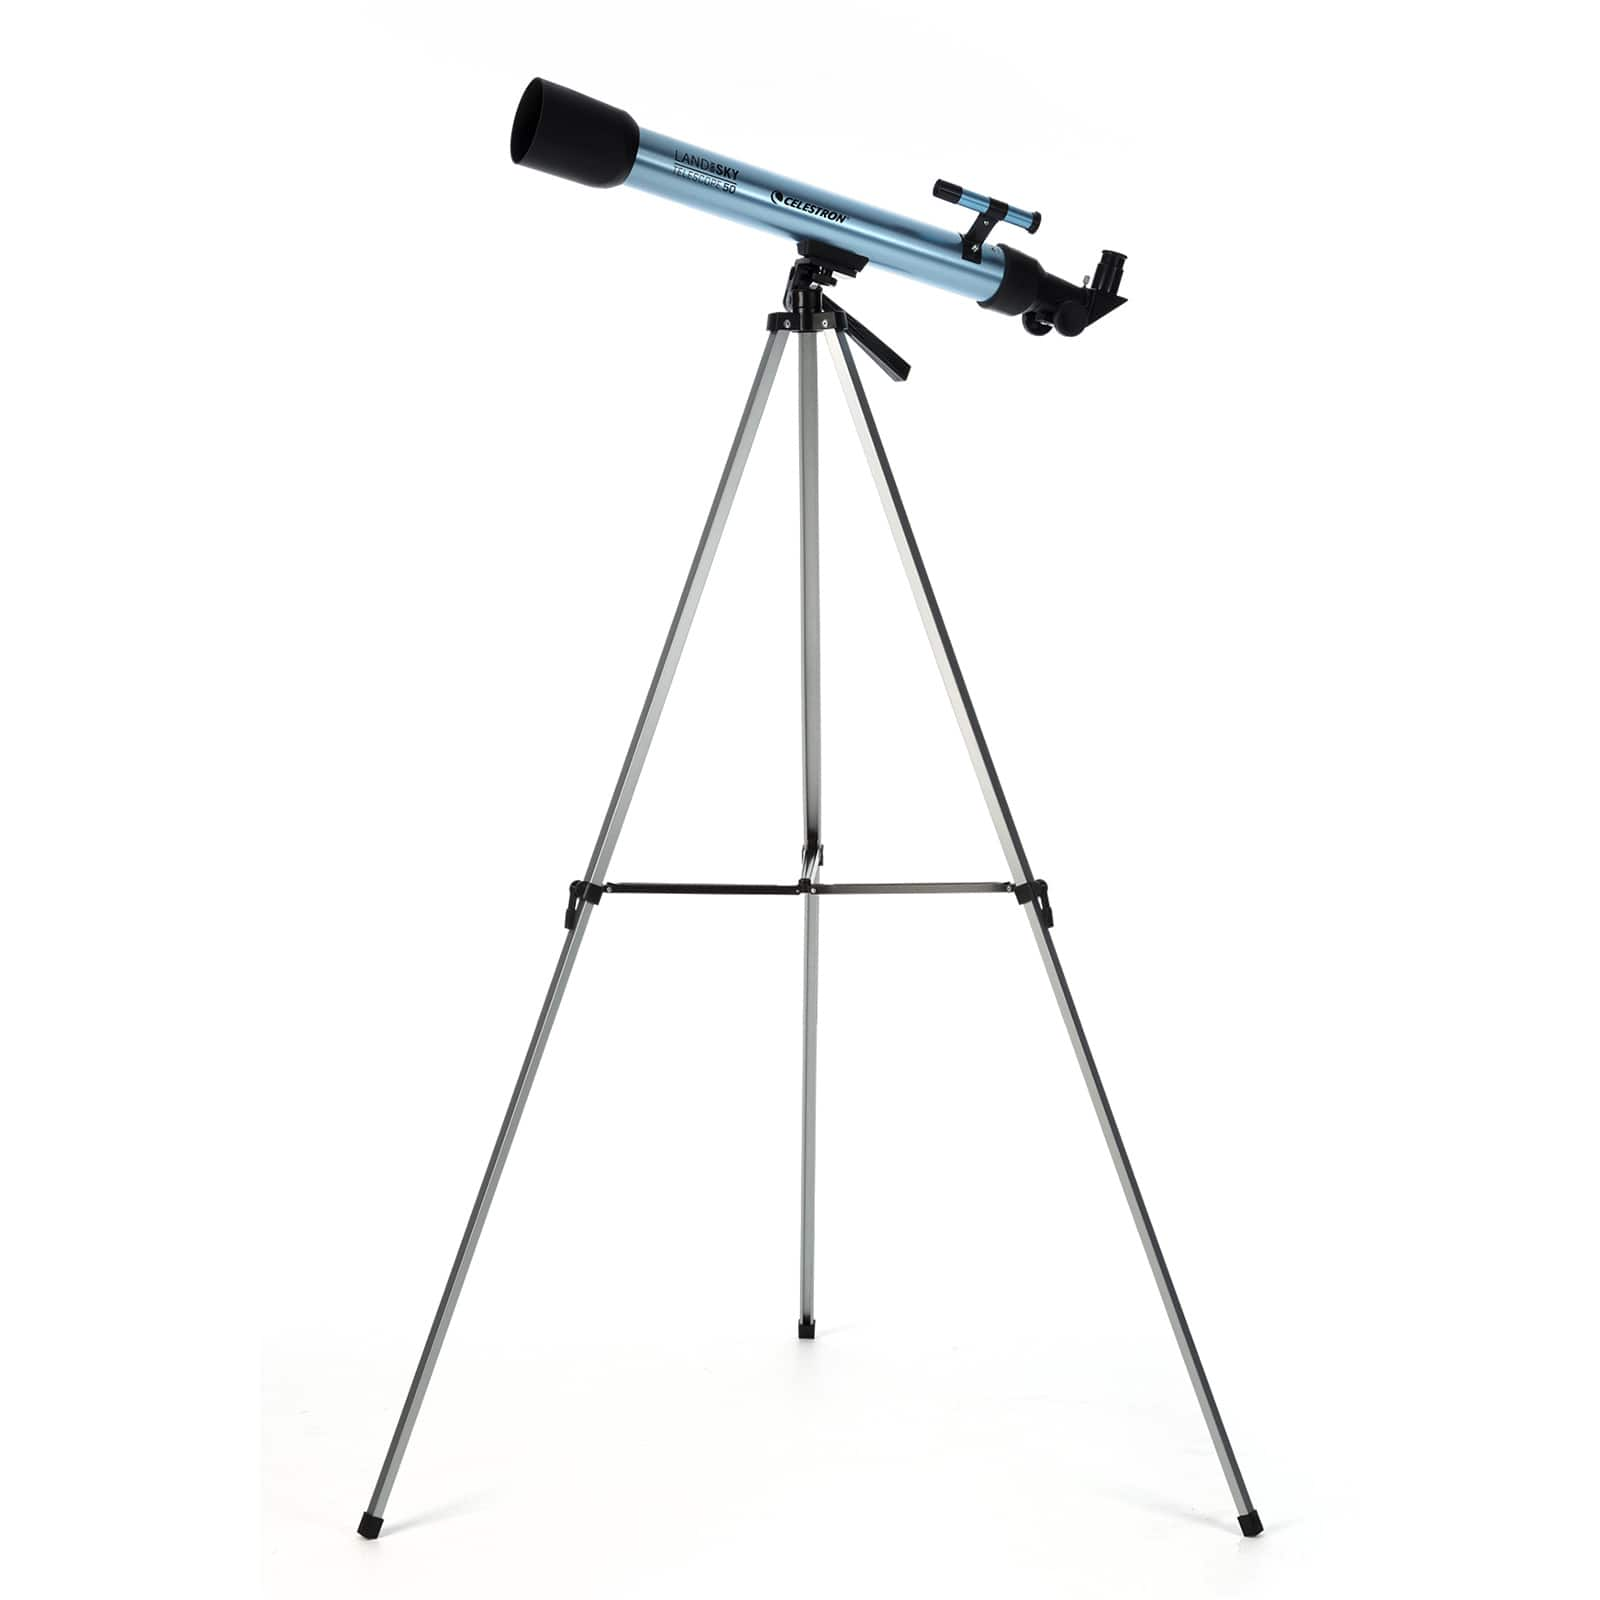 Shop for the Celestron® Land & Sky 50 Telescope at Michaels